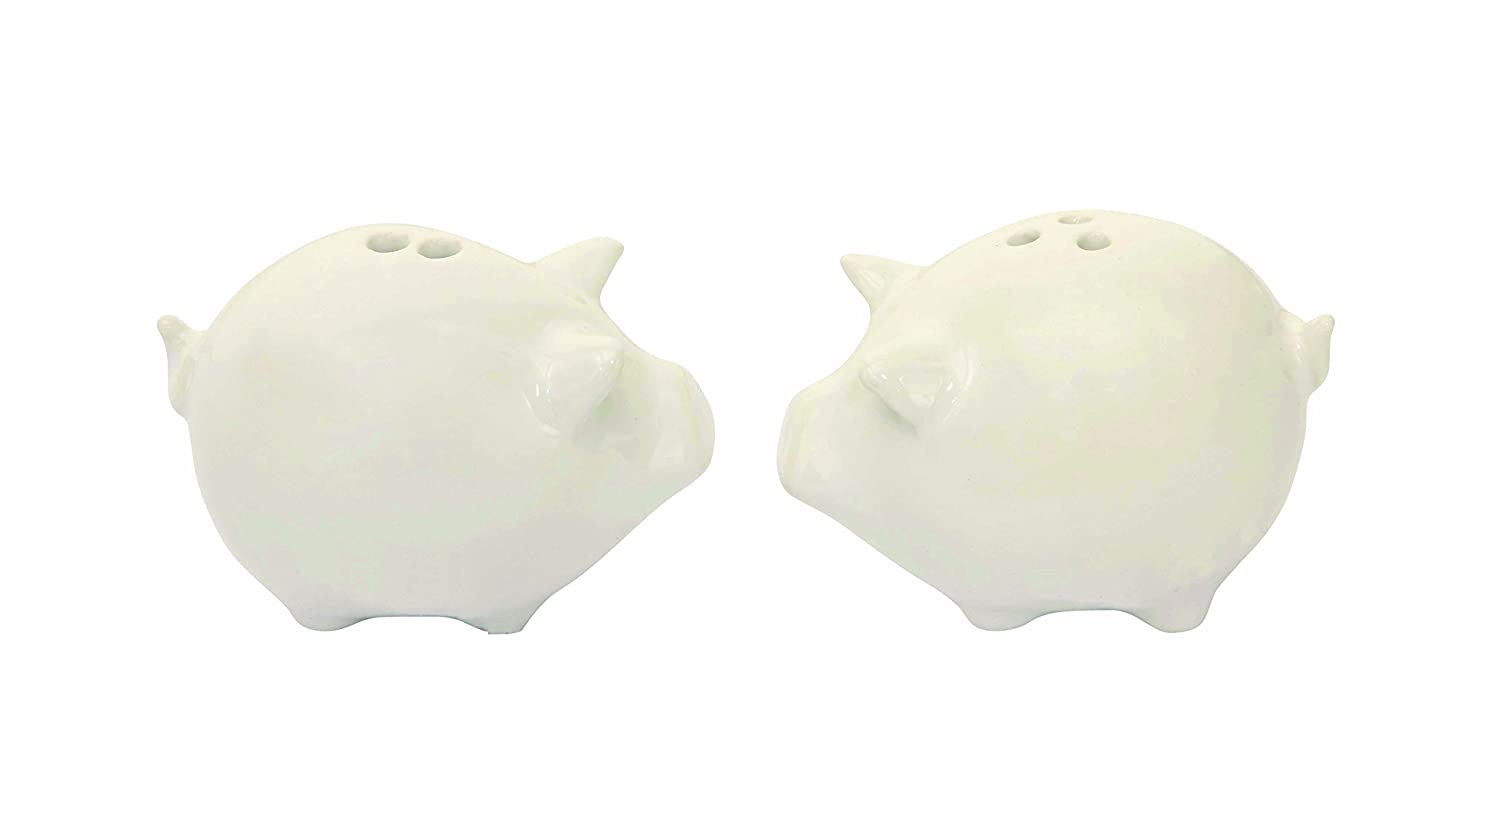 Creative Co-Op Stoneware Pig Salt and Pepper Shakers Set, White DA4606